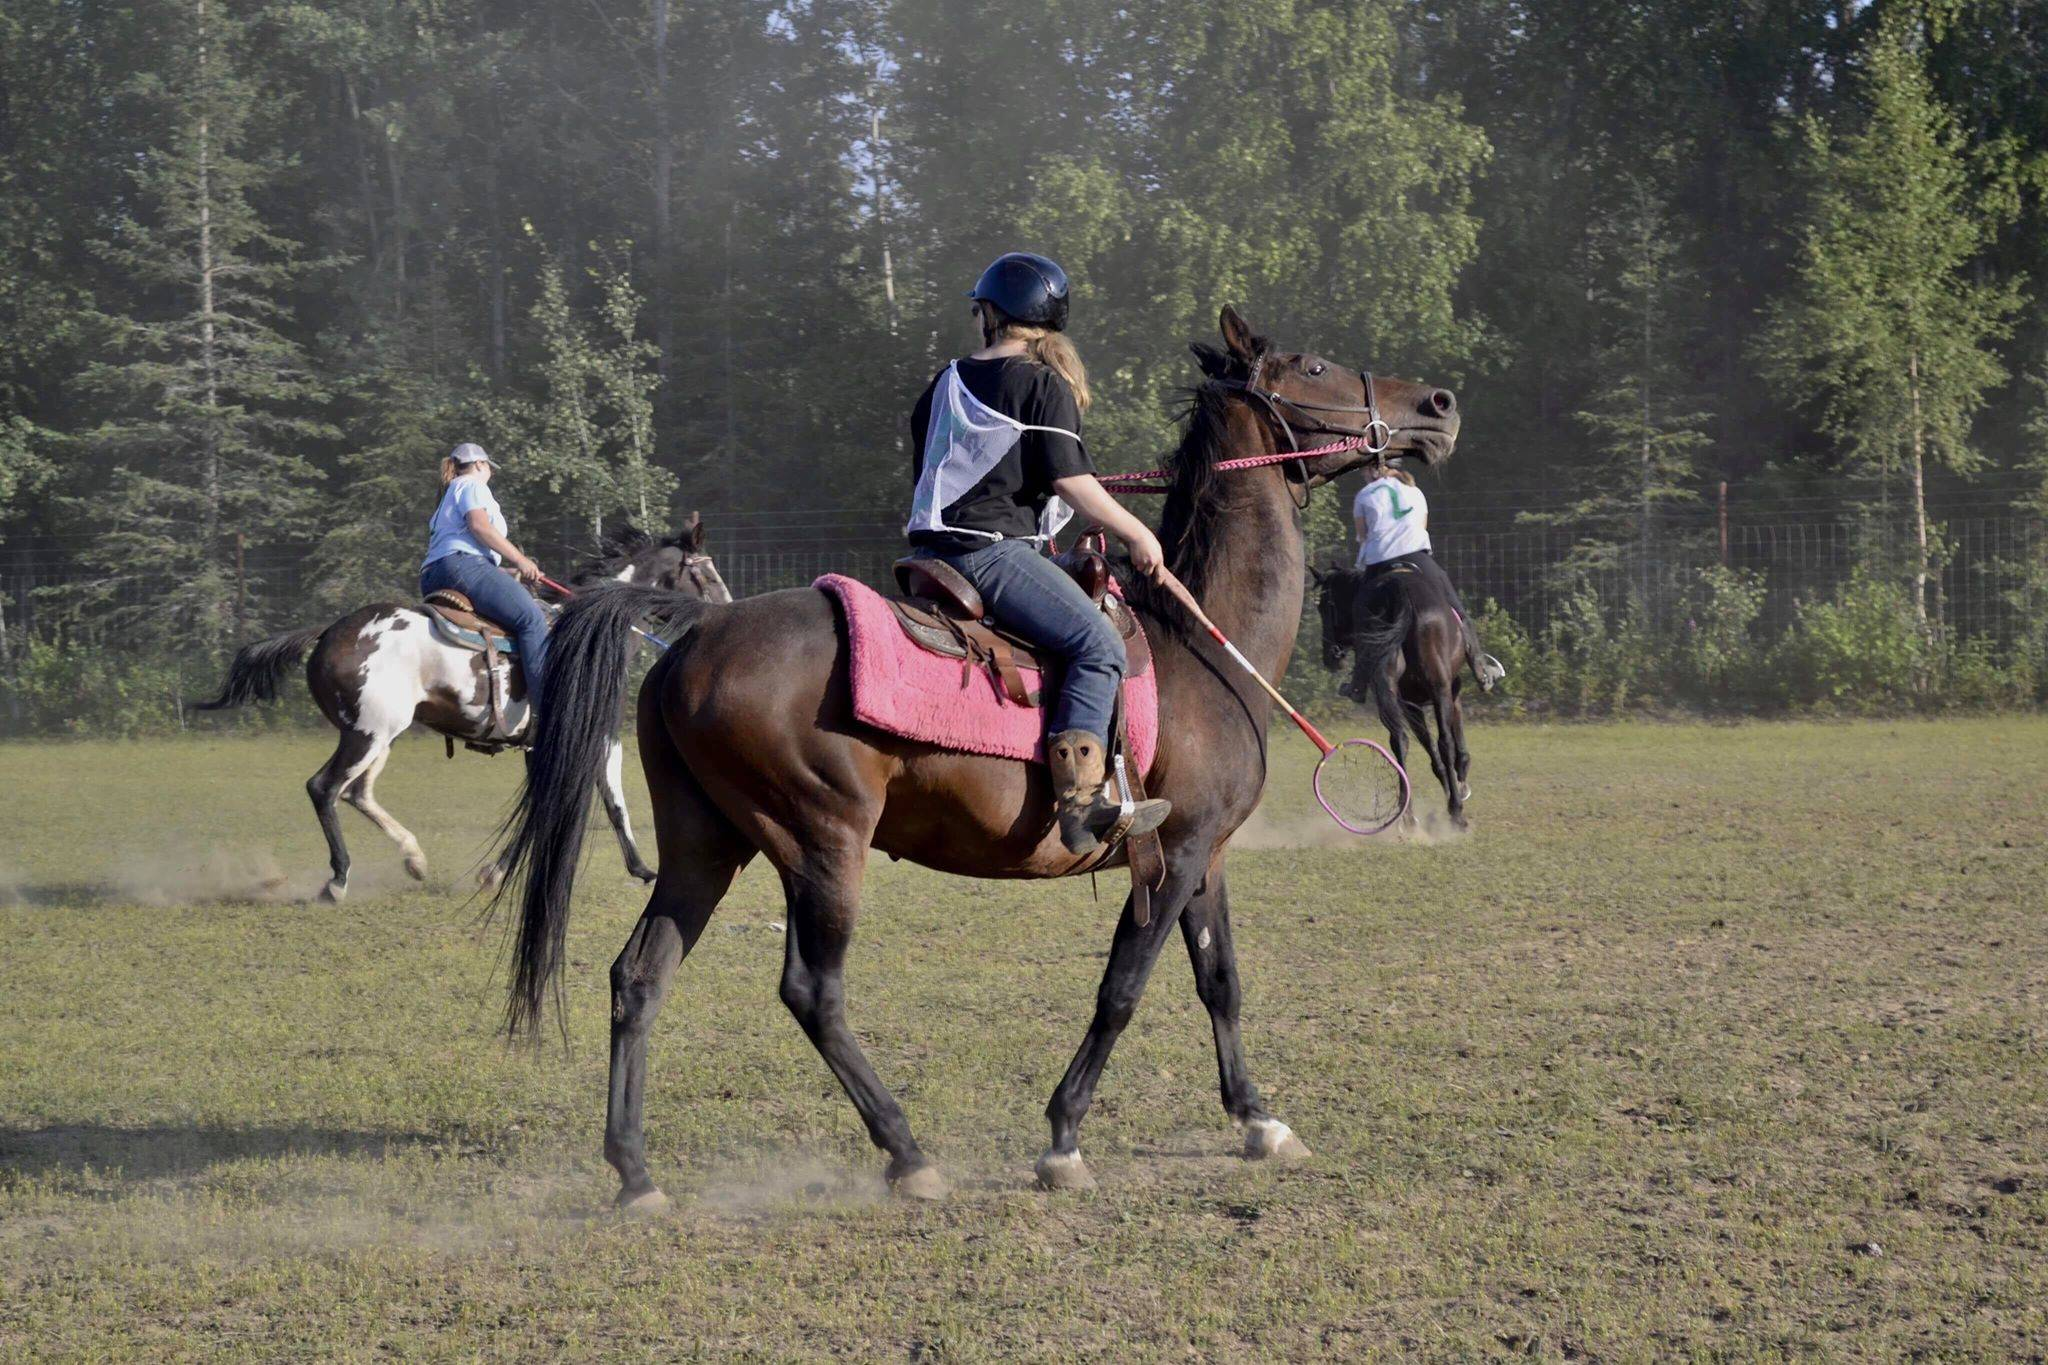 Maya Johnson, the Kenai polocrosse organizer, rides her horse during a game of polocrosse, a sport combining rules of polo and lacrosse, Thursday, July, 25, 2019 near Soldotna, Alaska. (Photo by Victoria Petersen/Peninsula Clarion)